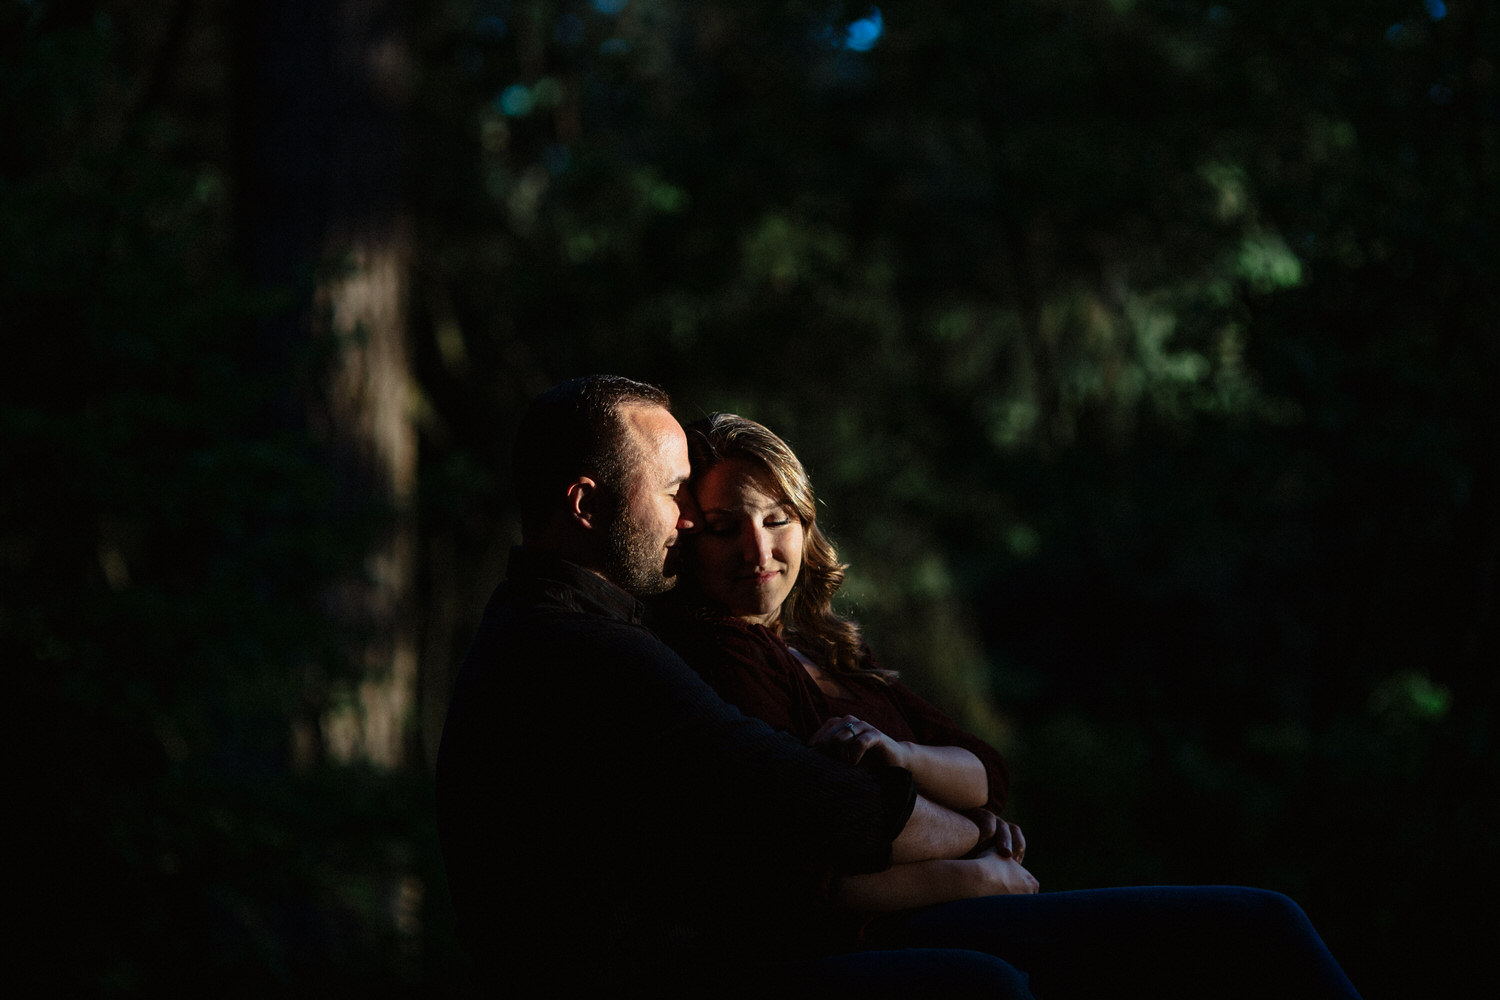 Hoyt Arboretum Engagement session photography Portland oregon 0016.JPG